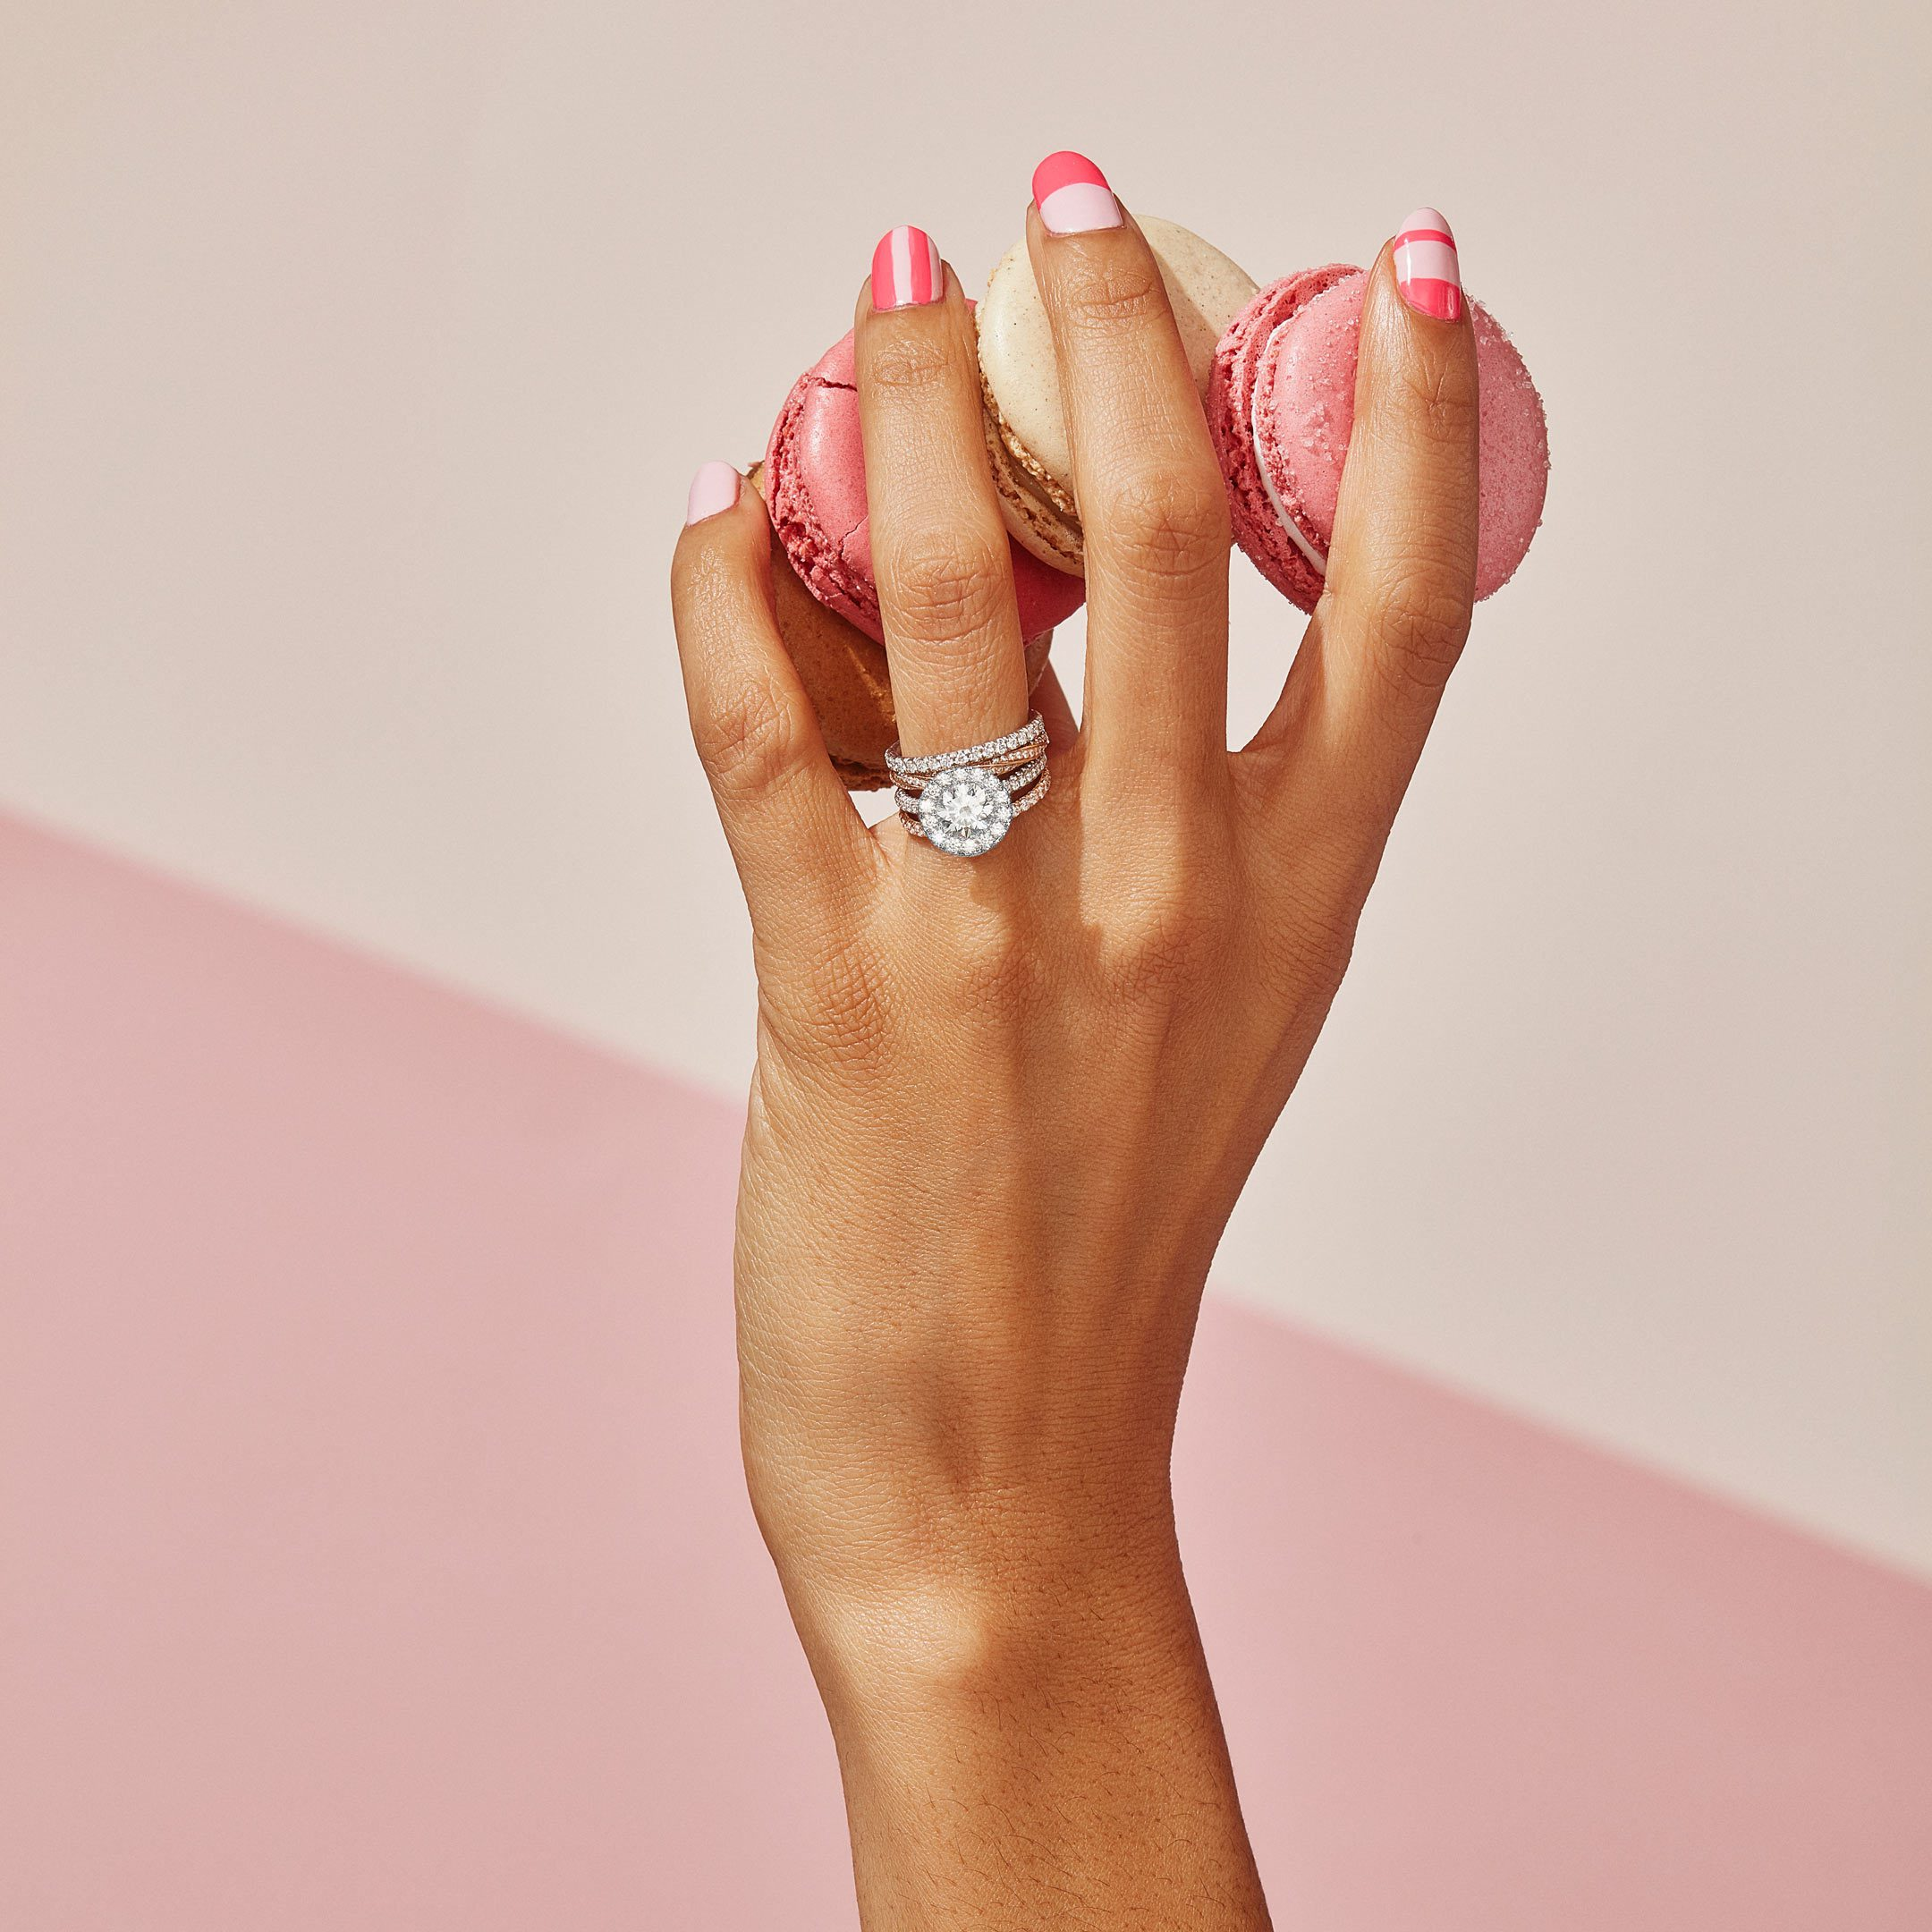 Jacqueline Round Brilliant Seamless Halo® Engagement Ring with diamond pavé in Platinum Hand with Macaroons Lifestyle by Oui by Jean Dousset